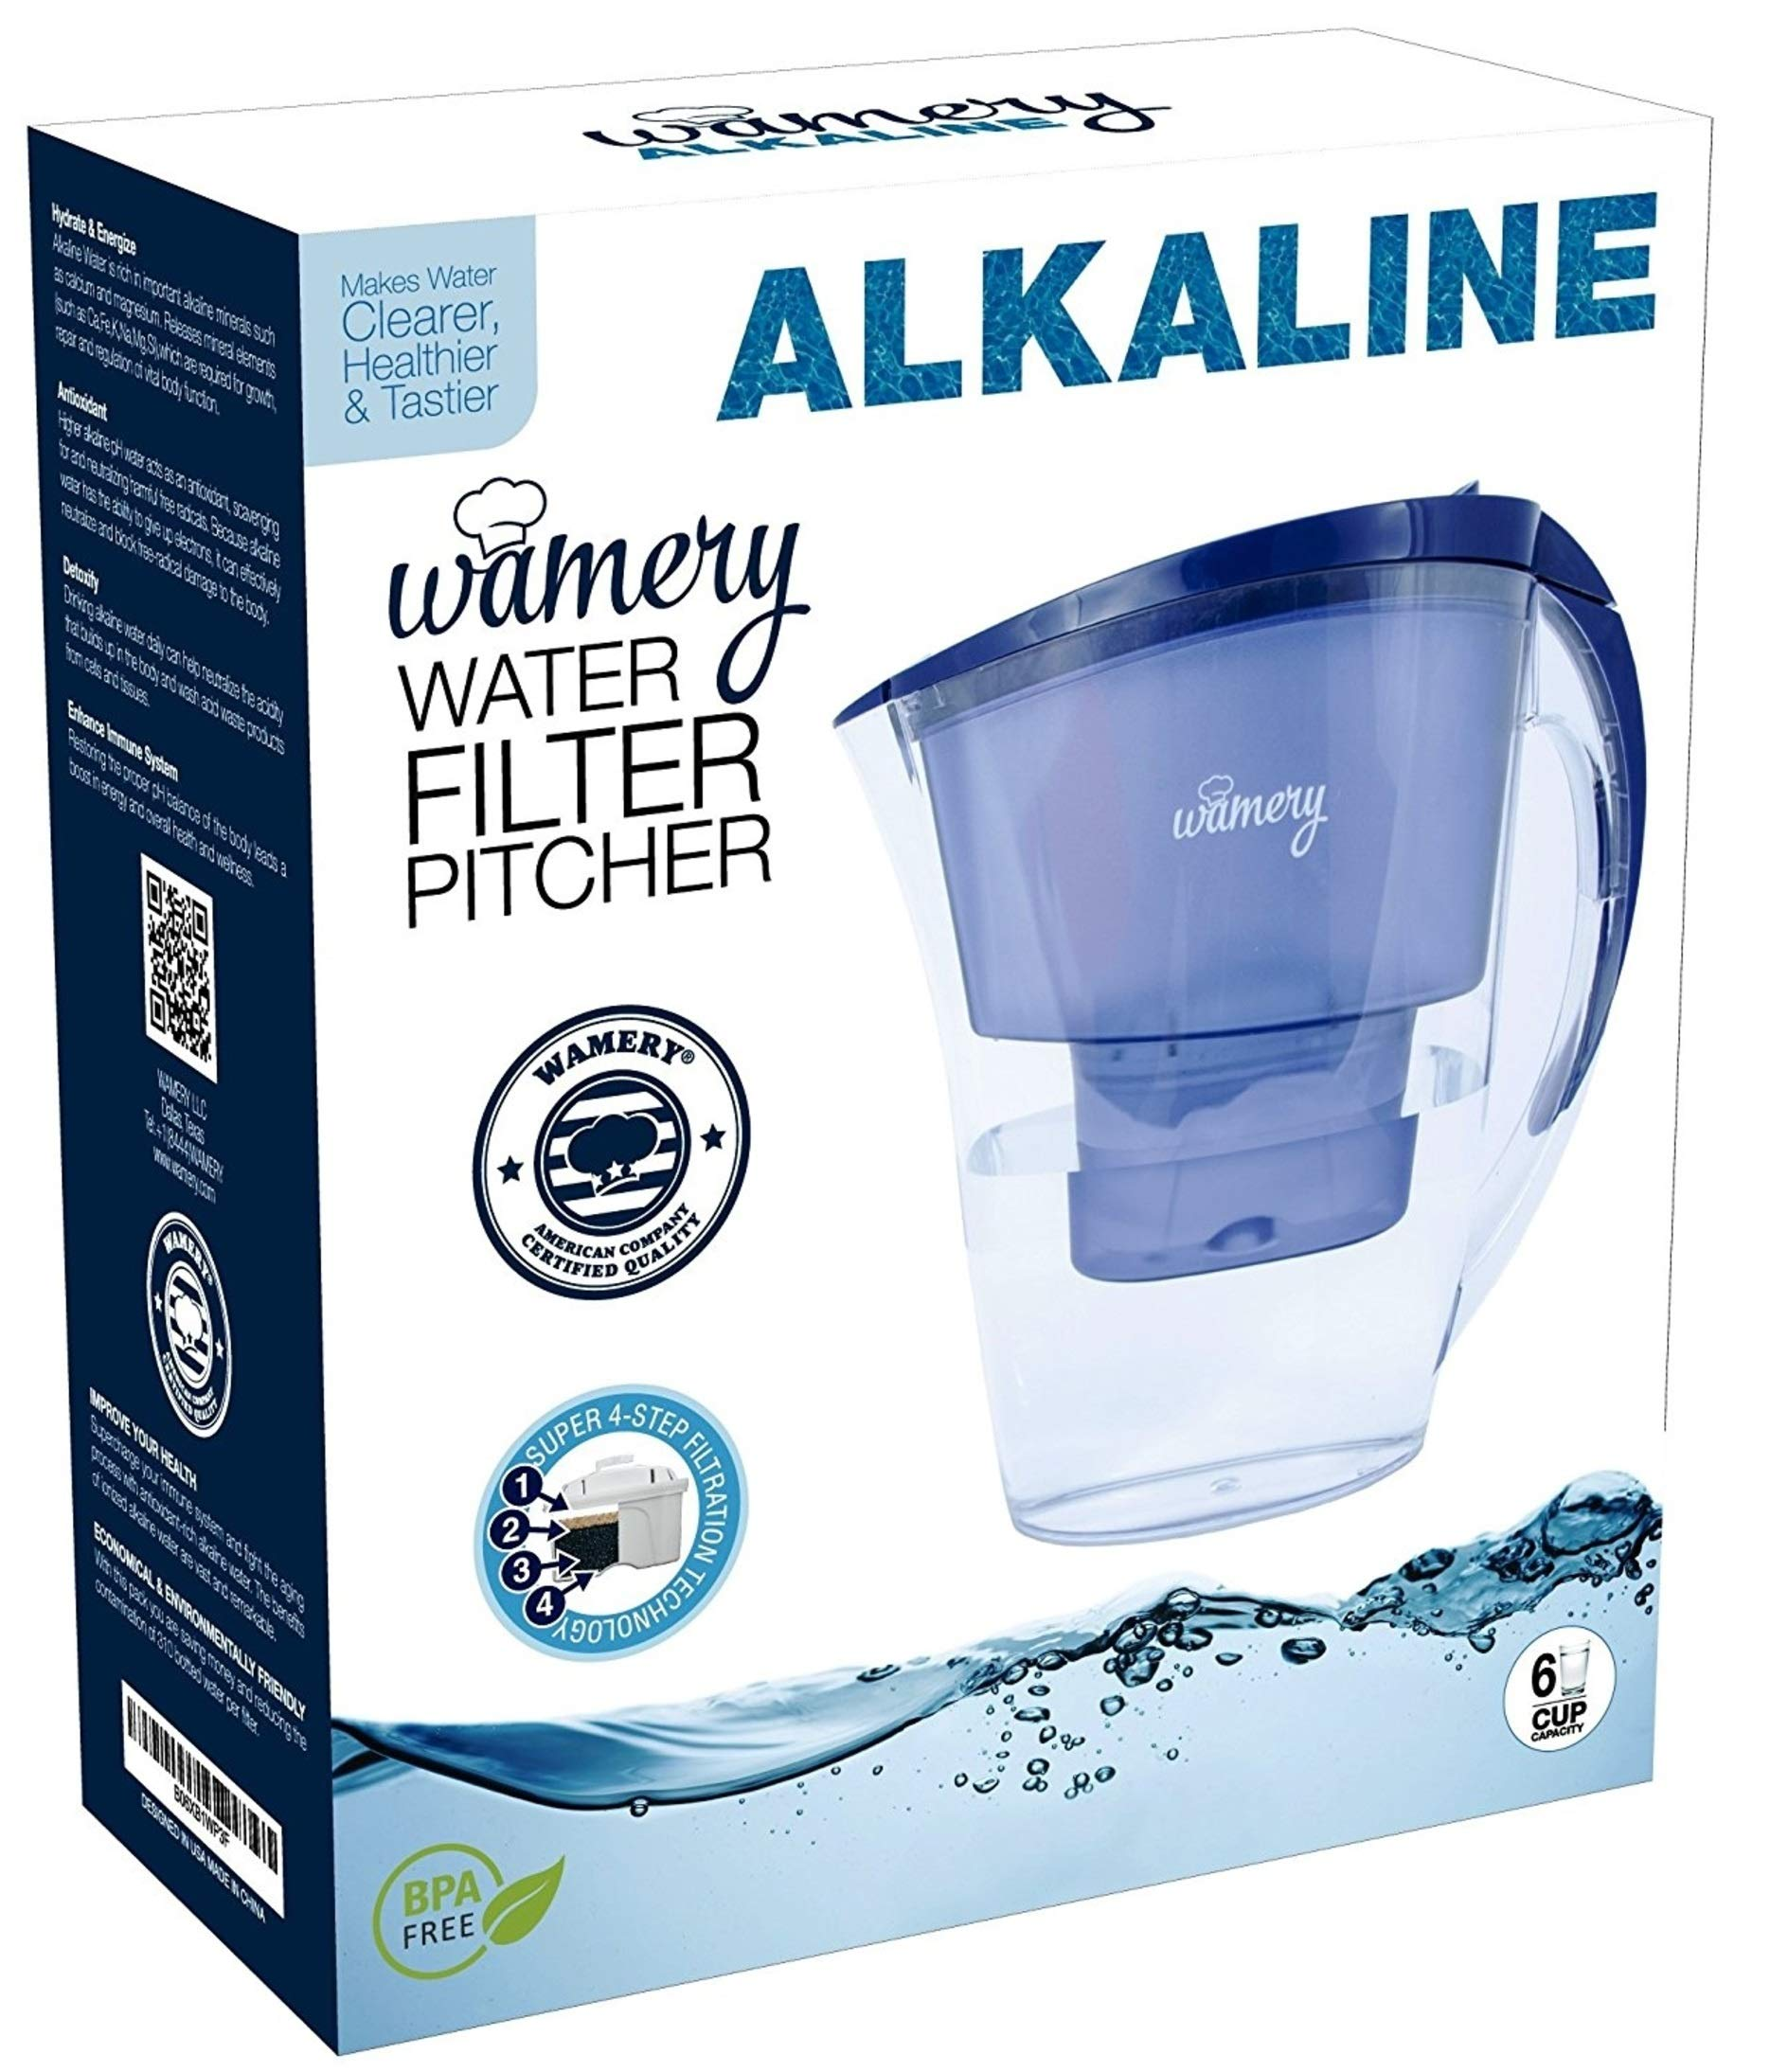 WAMERY Alkaline Water Pitcher 1.5 Liters, 6 Cup, Enhanced 2020 Slim Model, Free Filter Included, Improves pH, Removes Lead, Chlorine, Copper and more. Natural Solution for Acid Reflux and Dehydration